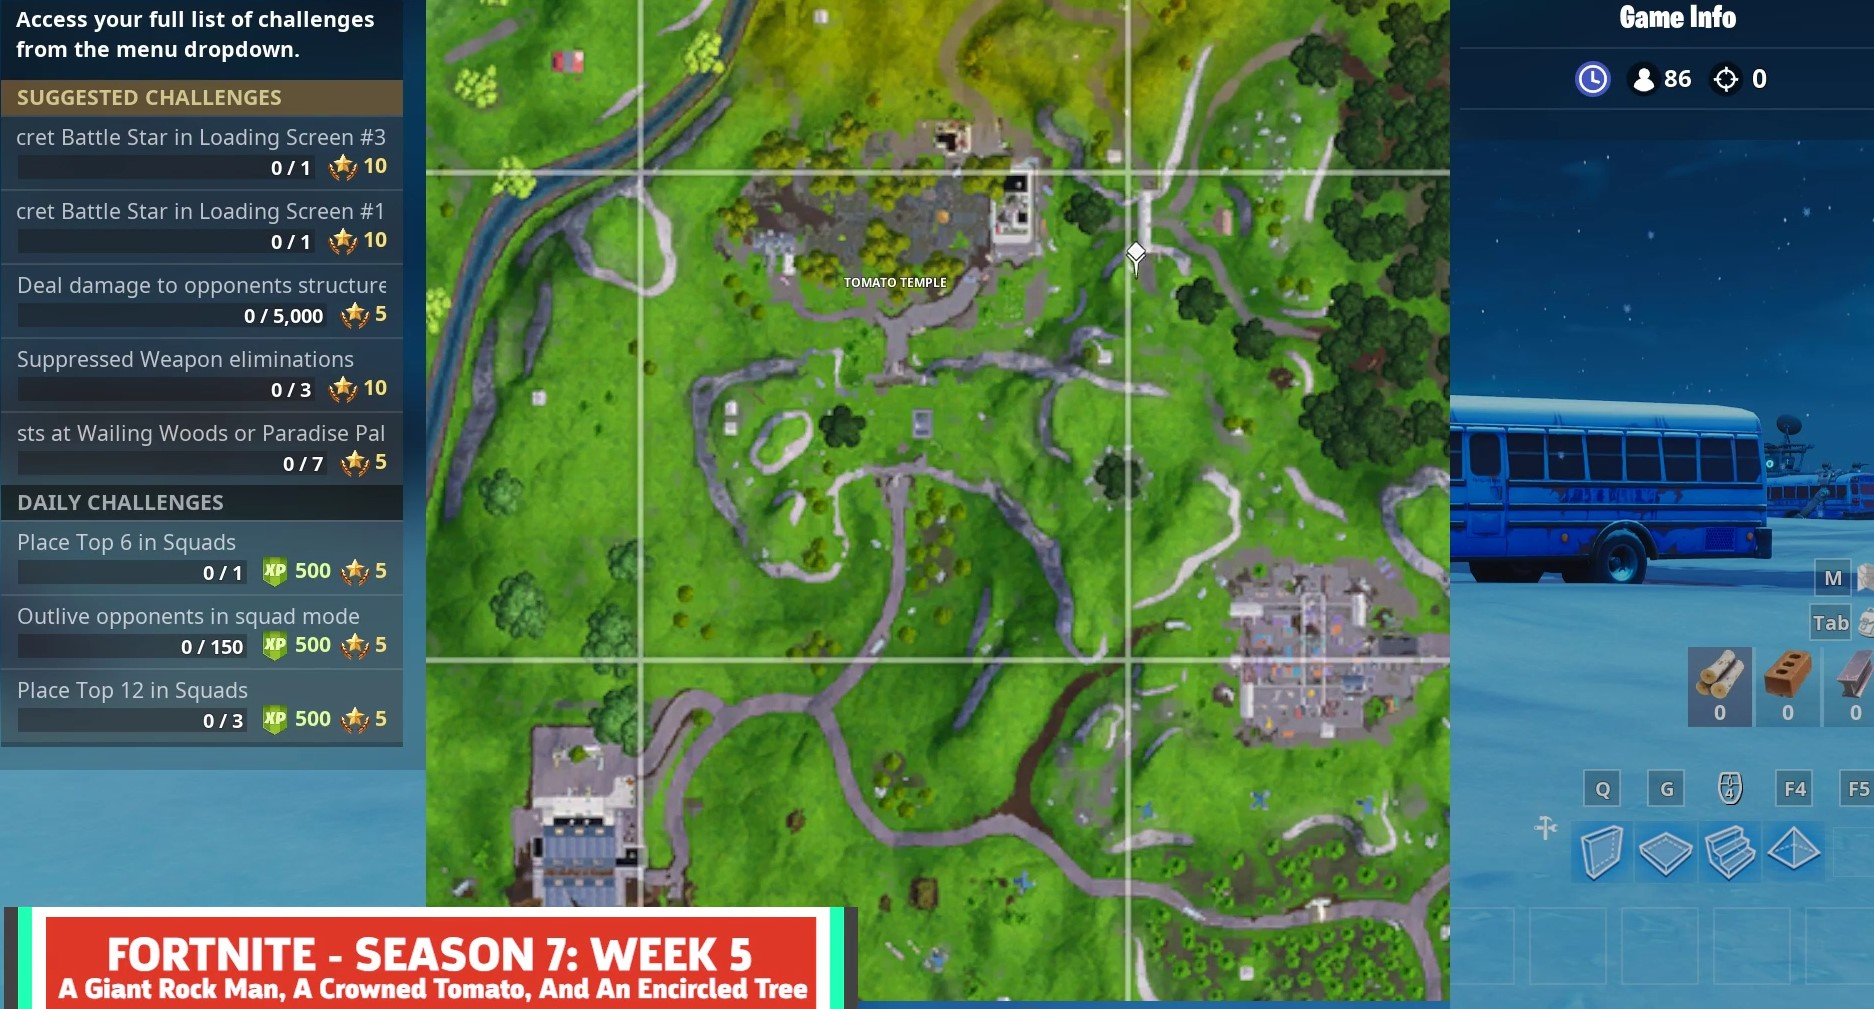 'Fortnite' Week 5 Secret Battle Star Location & Snowfall Loading Screen